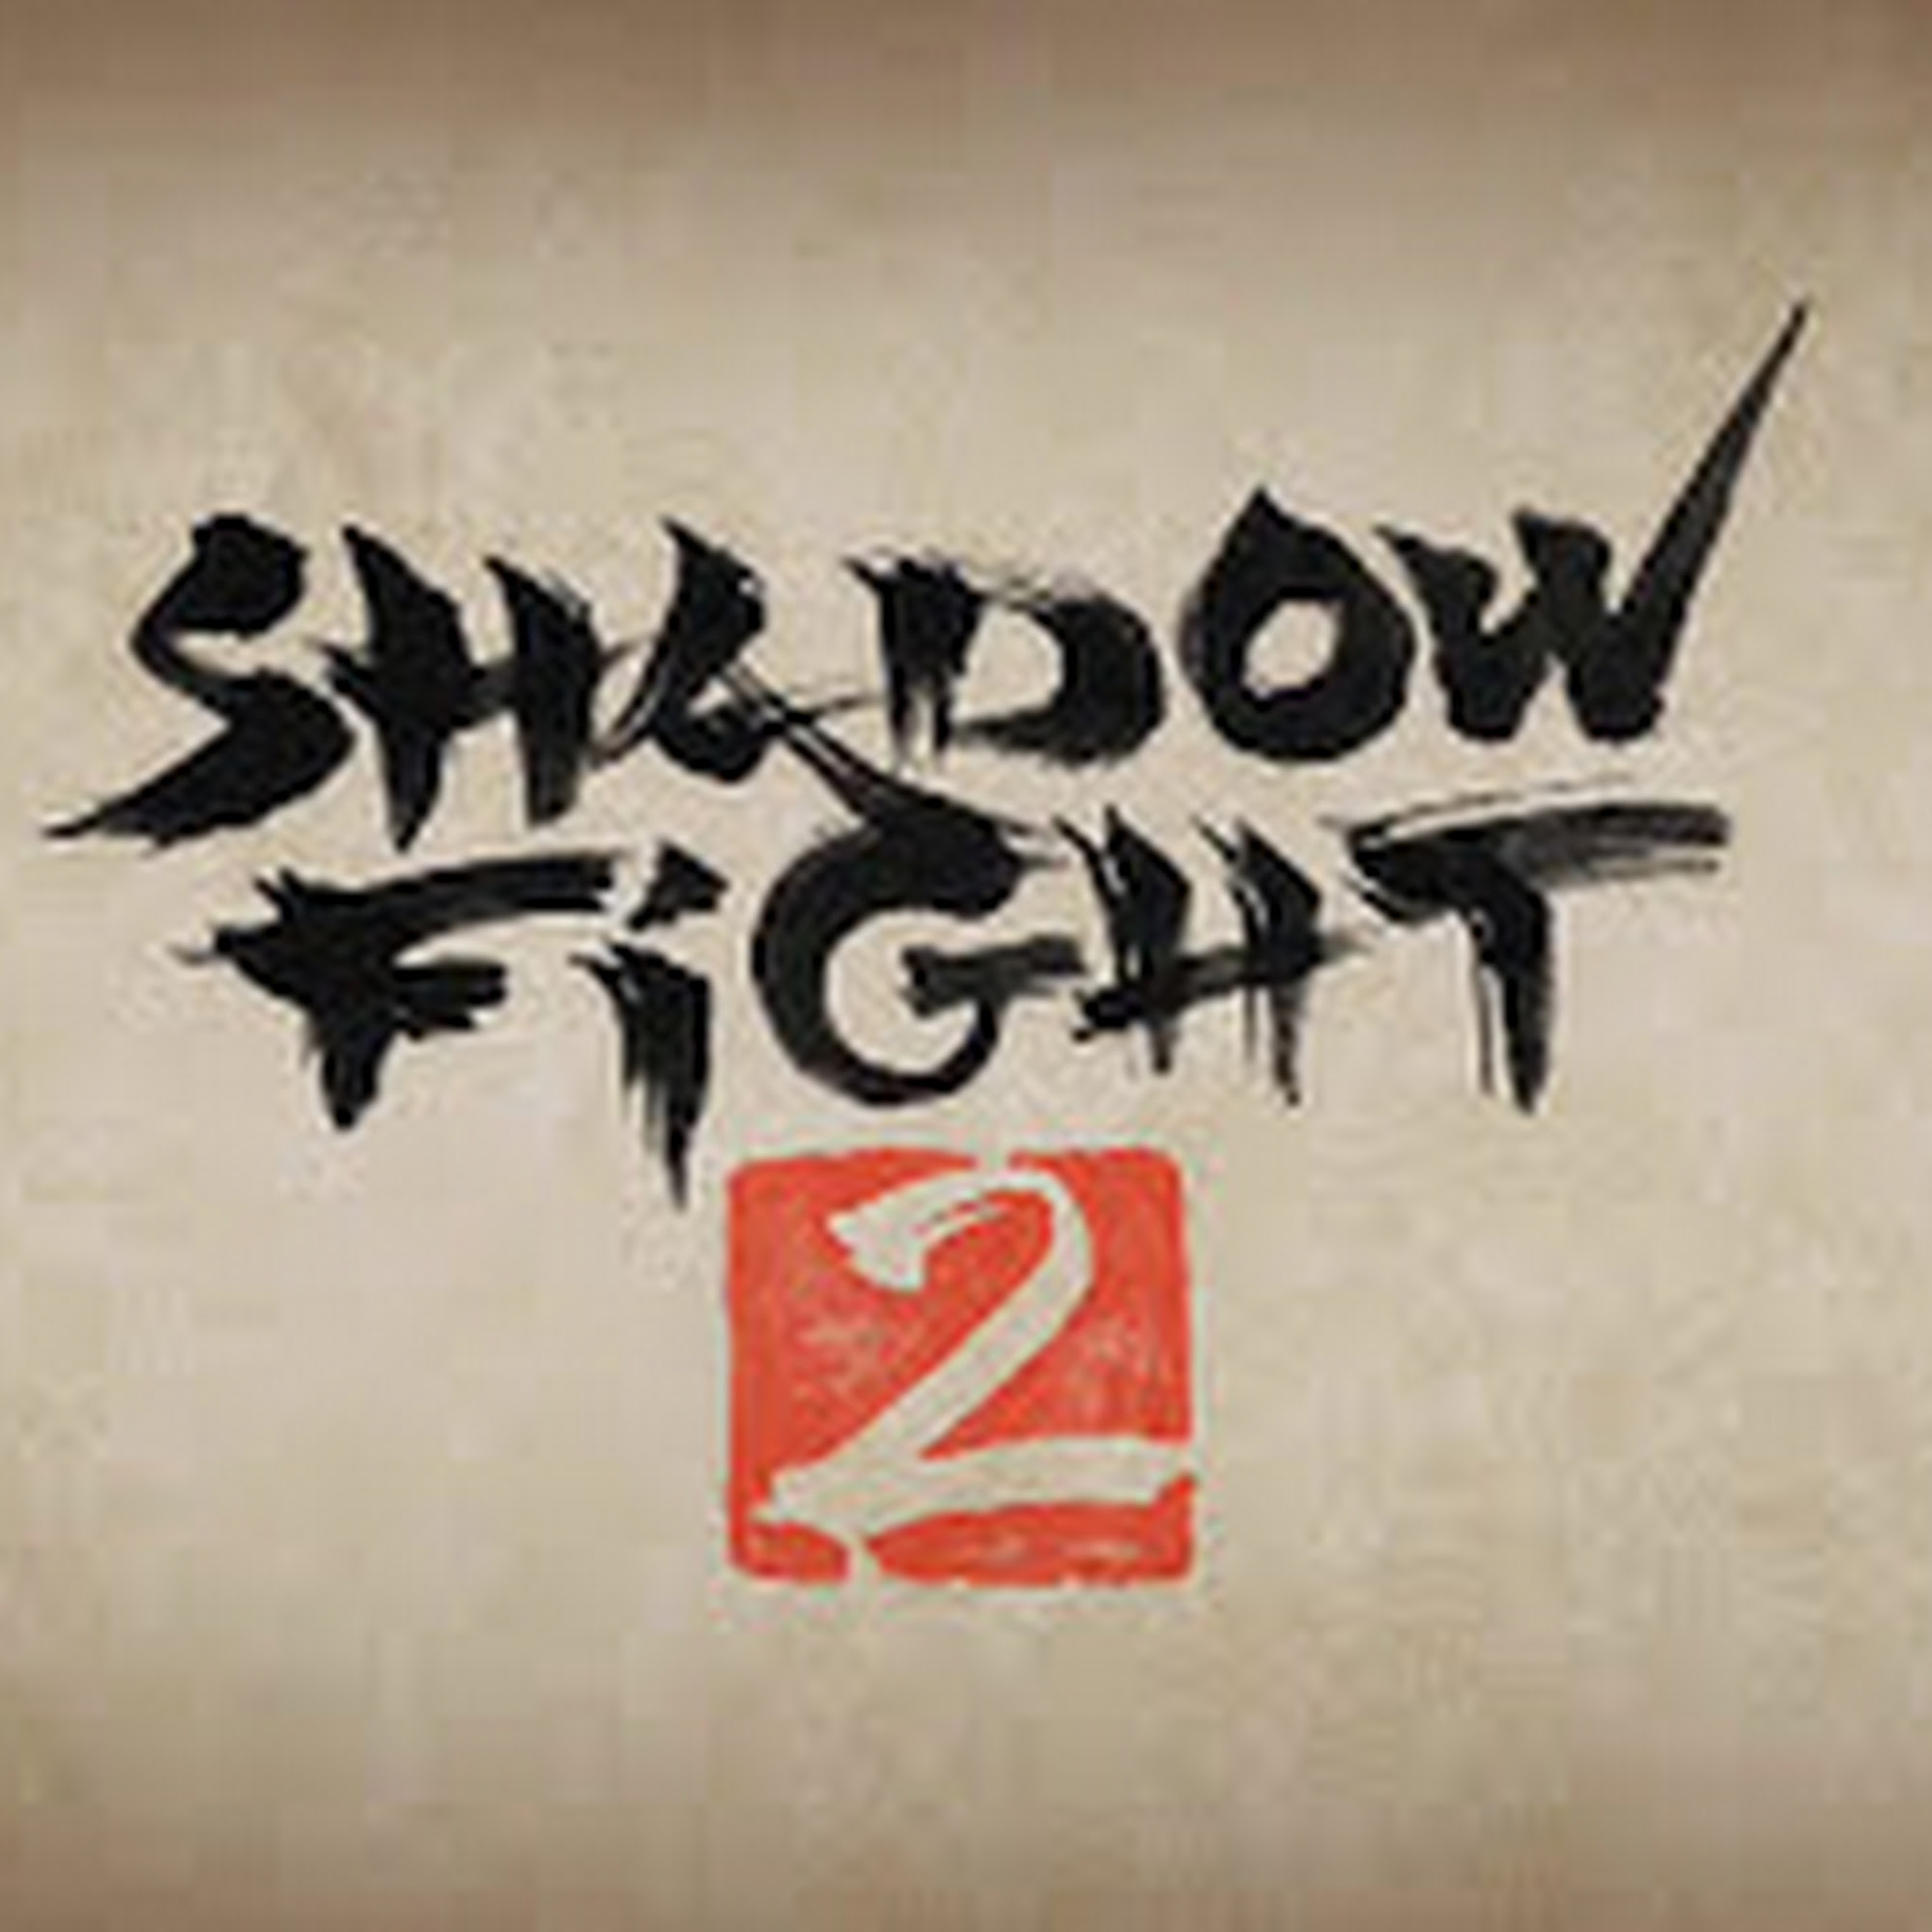 How to Update Modded Shadow Fight 2 and Download Shadow Fight 2 V2.7.1 Update Package